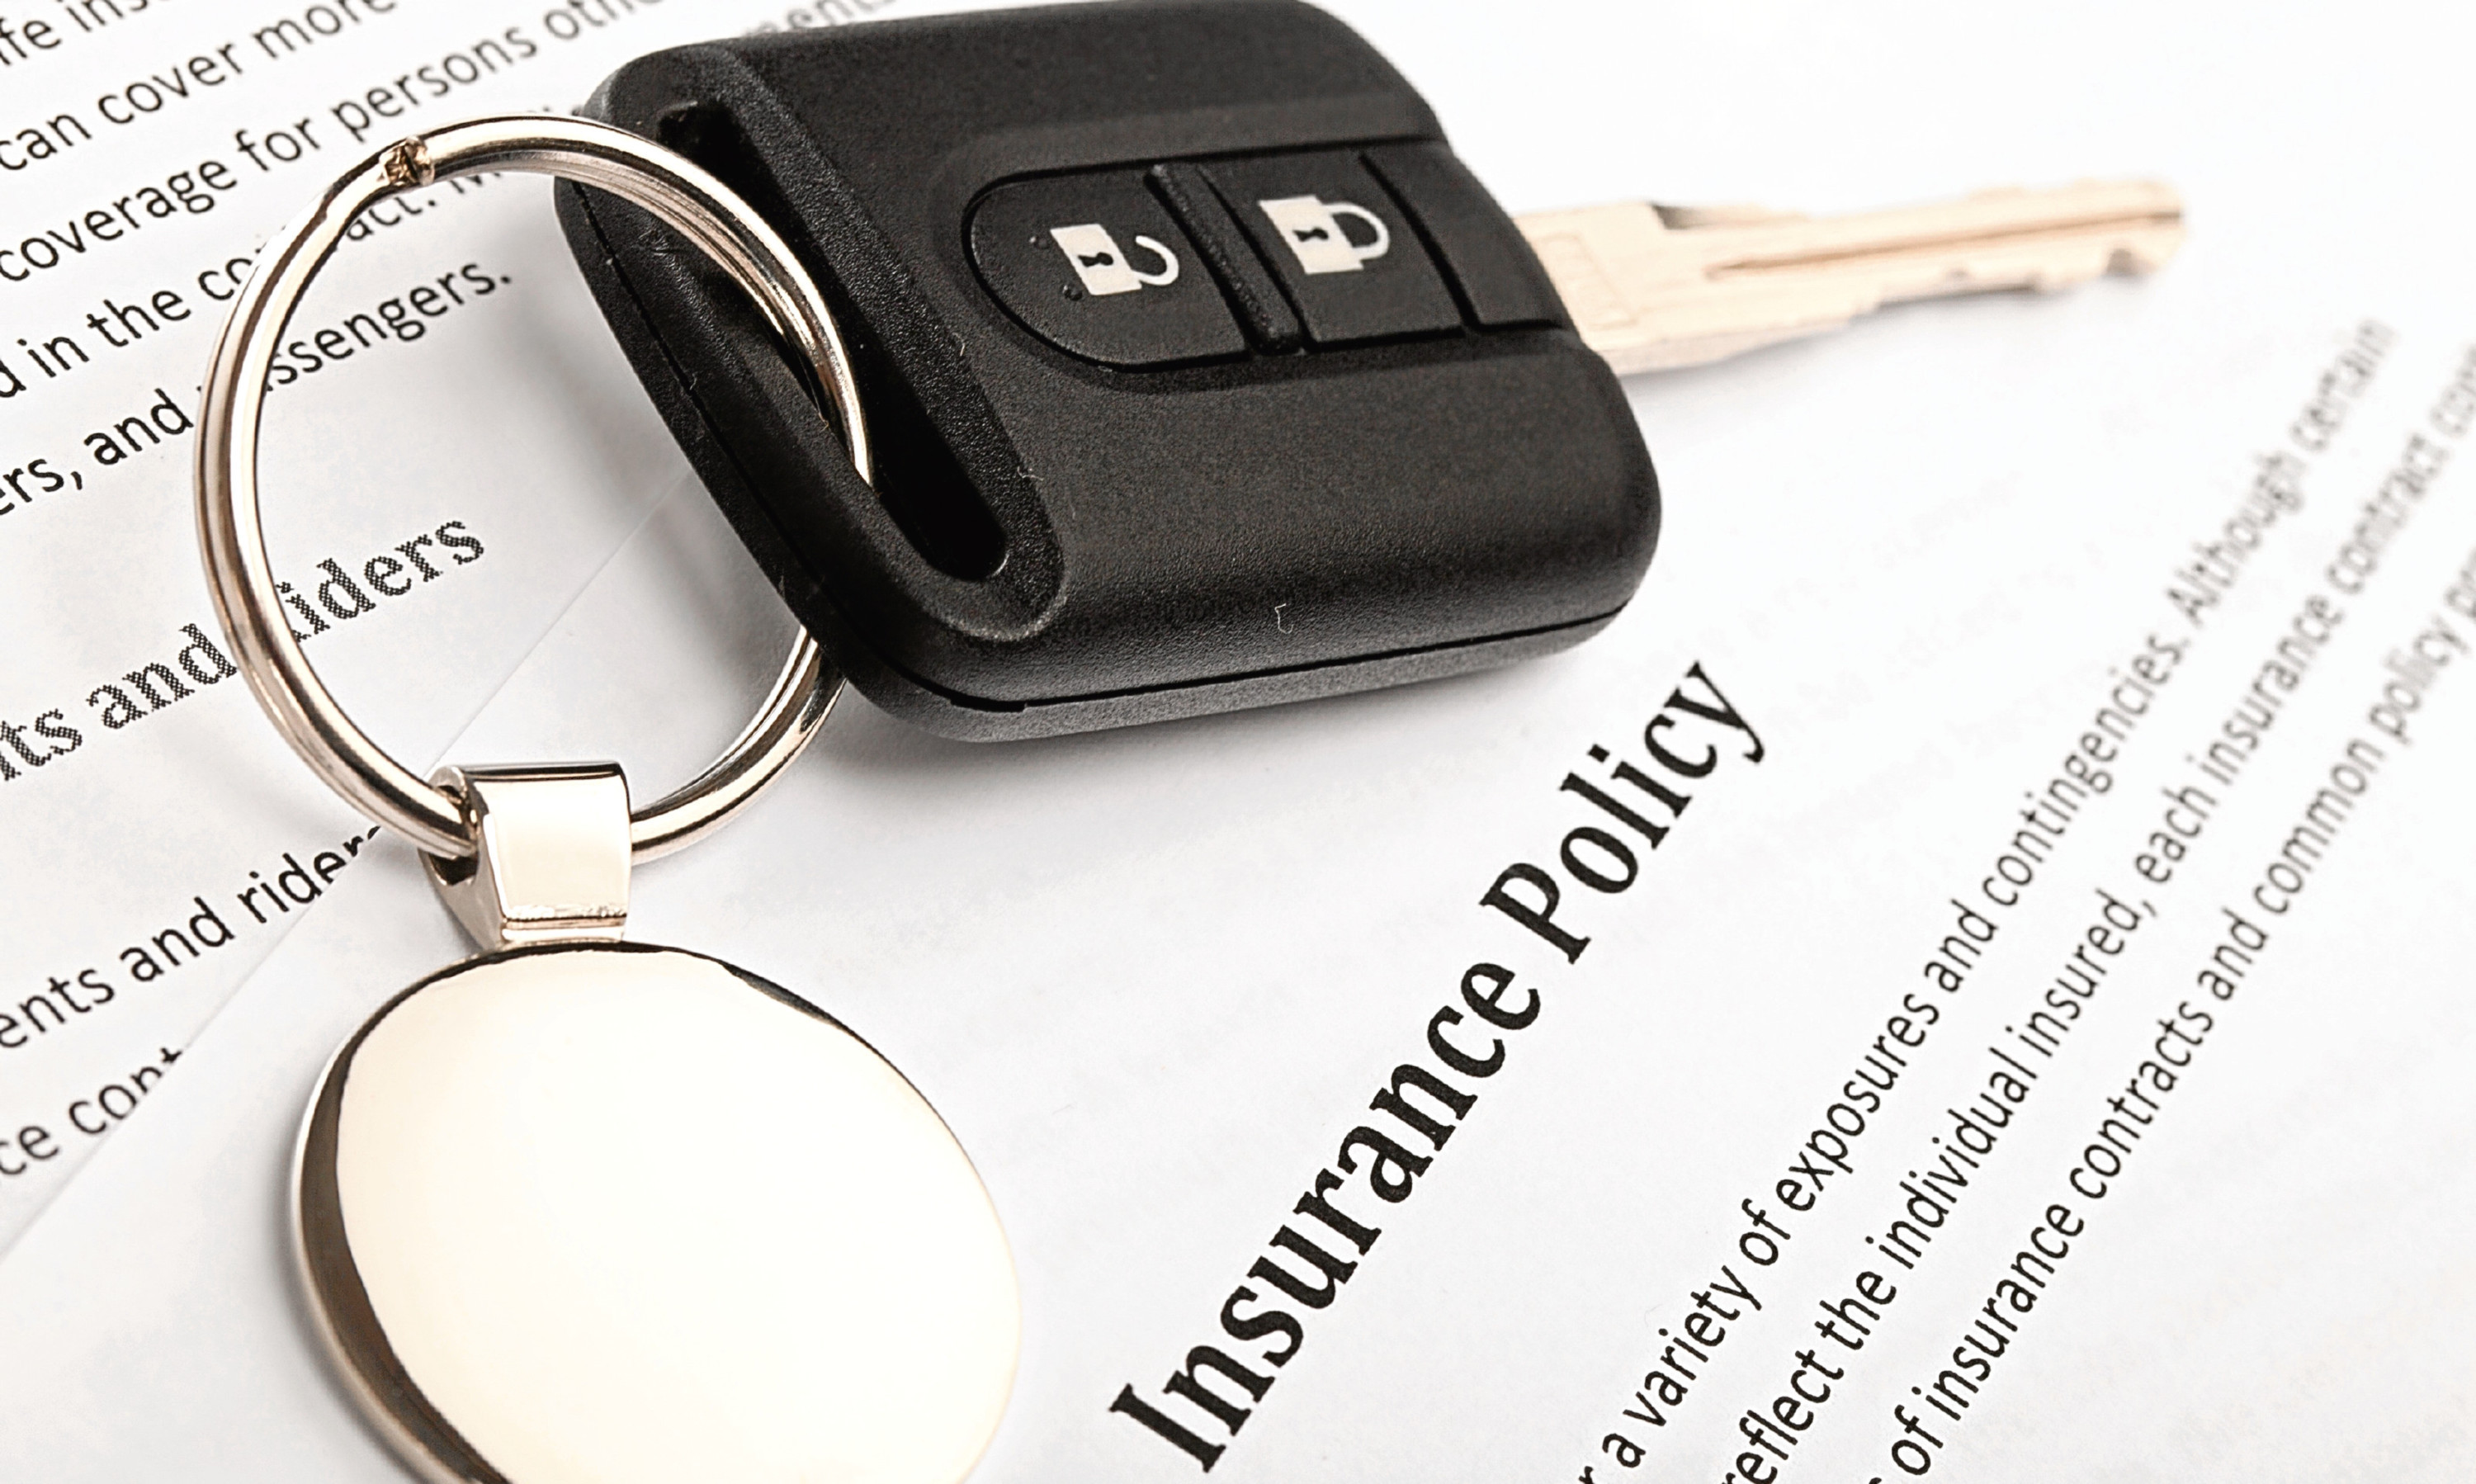 Car Key on an Insurance Policy